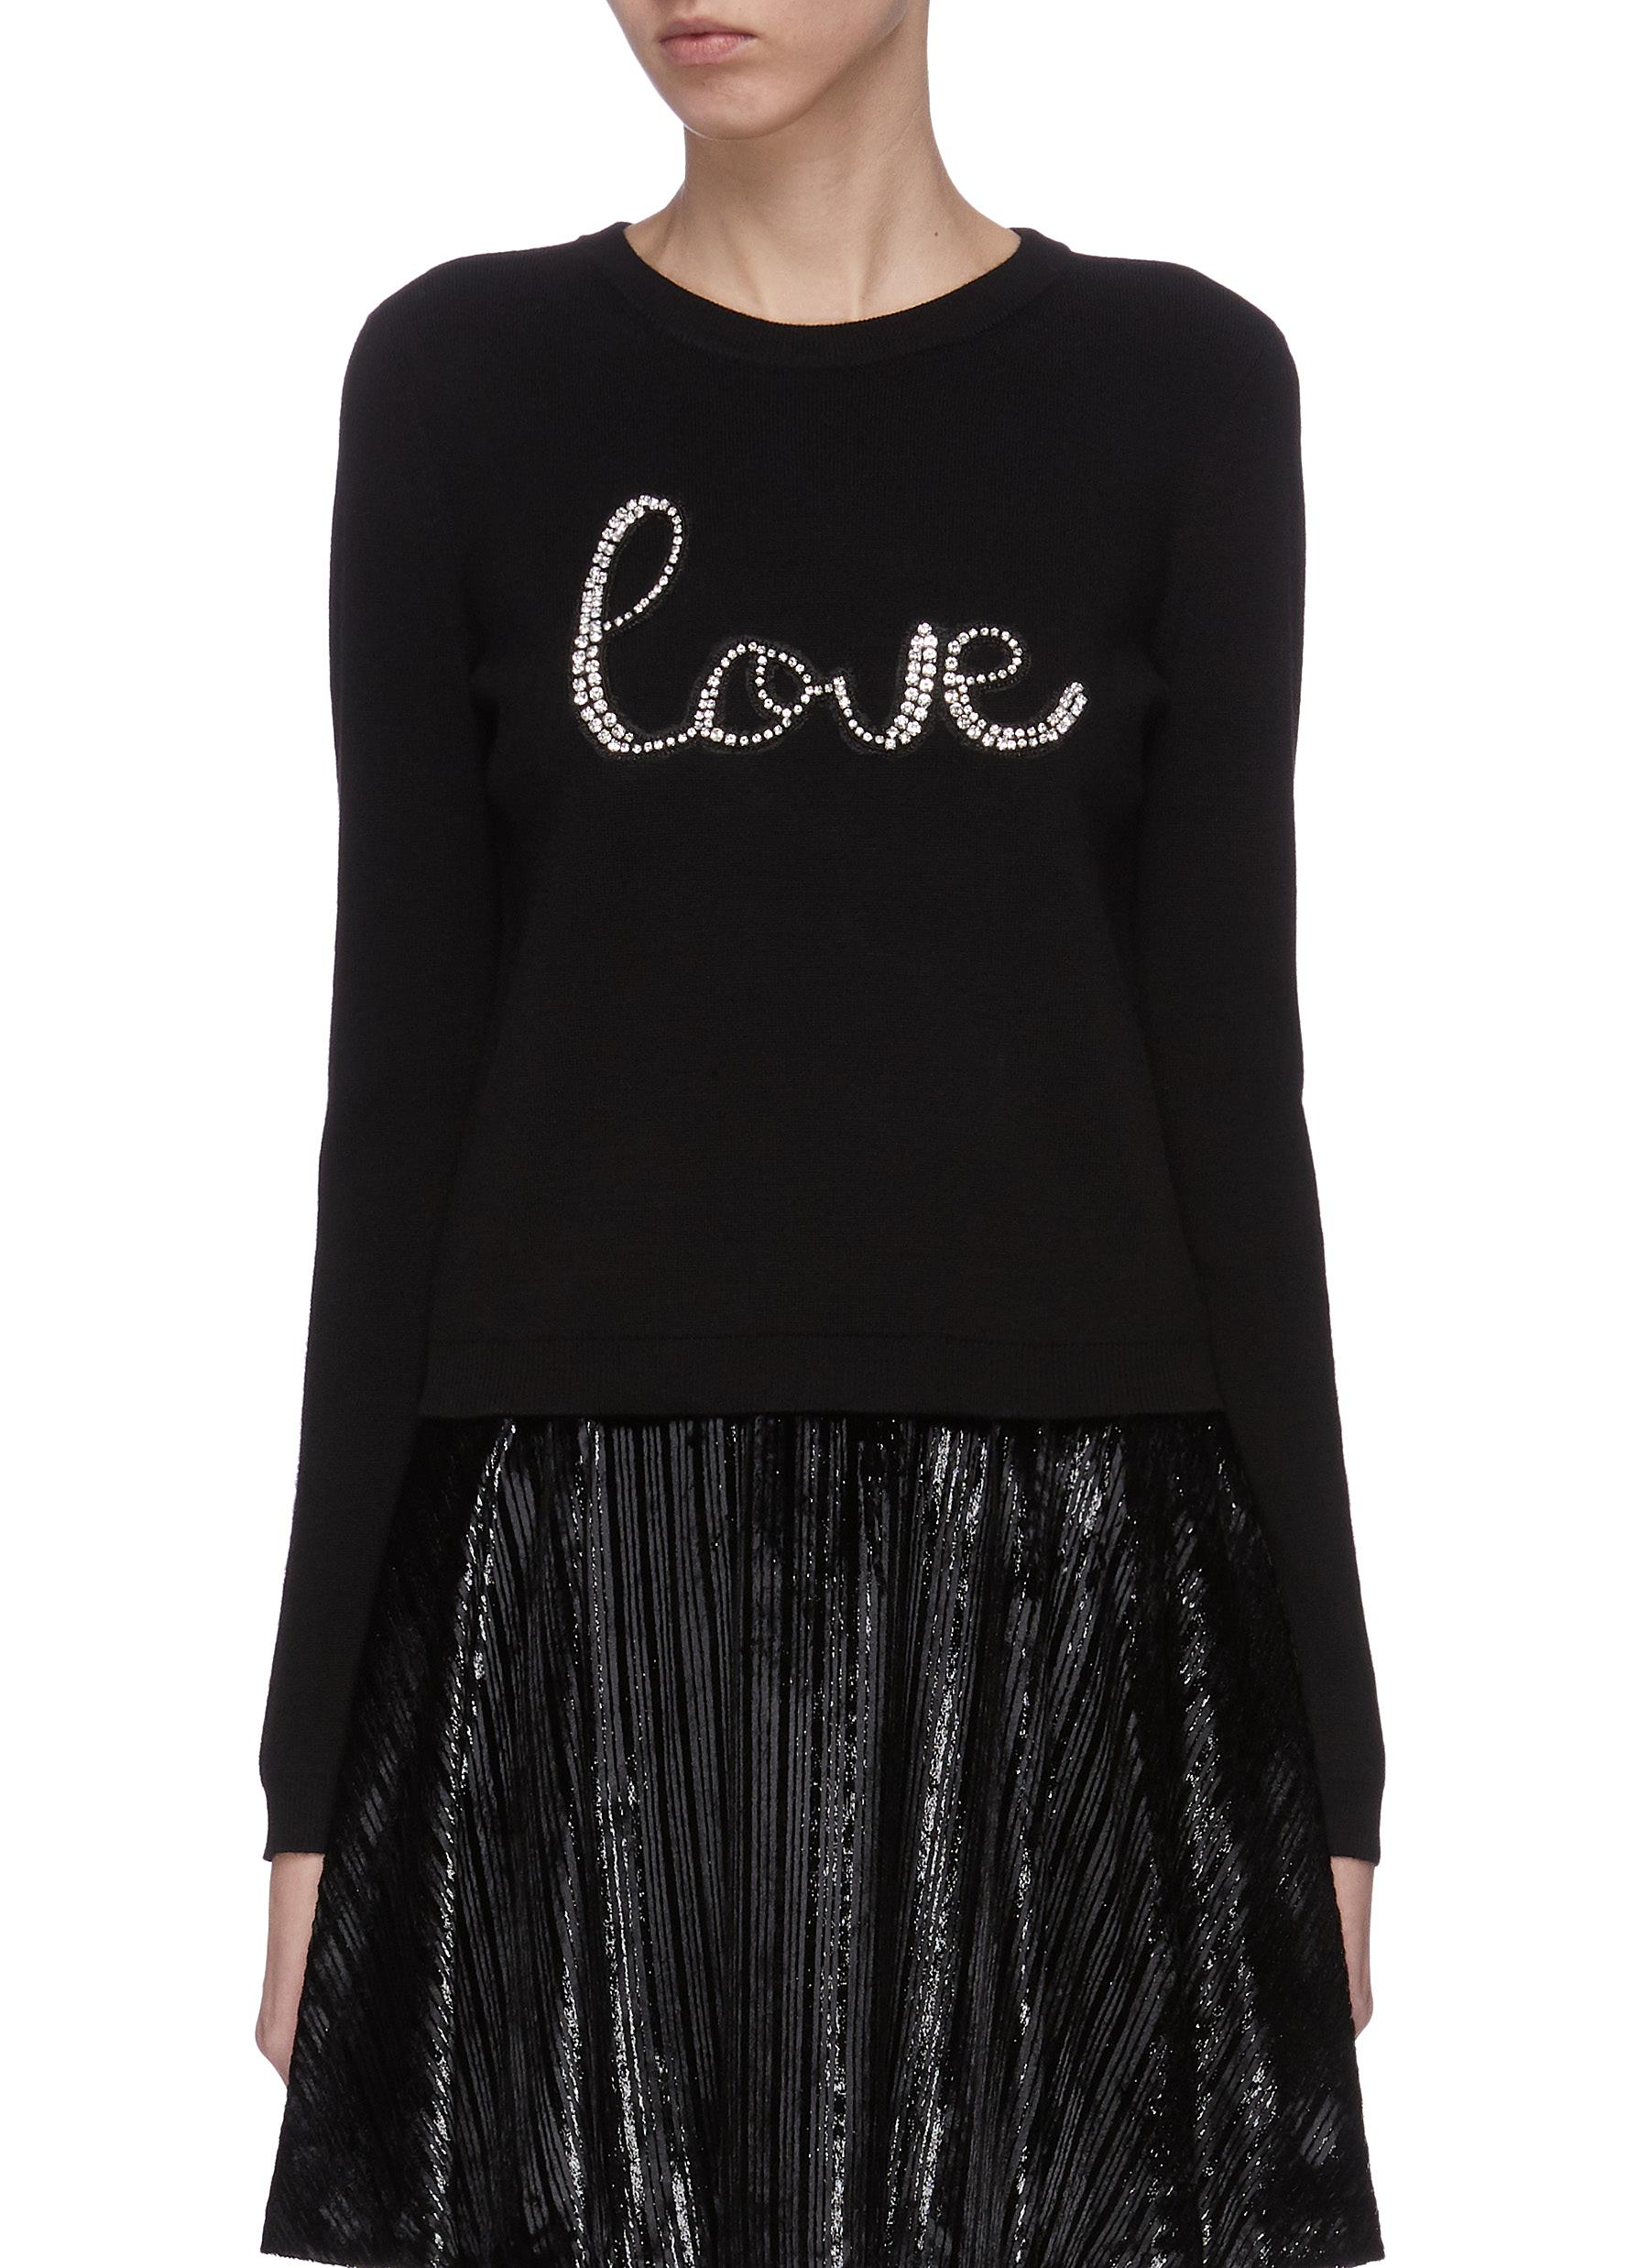 Buy Alice + Olivia Knitwear 'Connie' slogan print sweatshirt